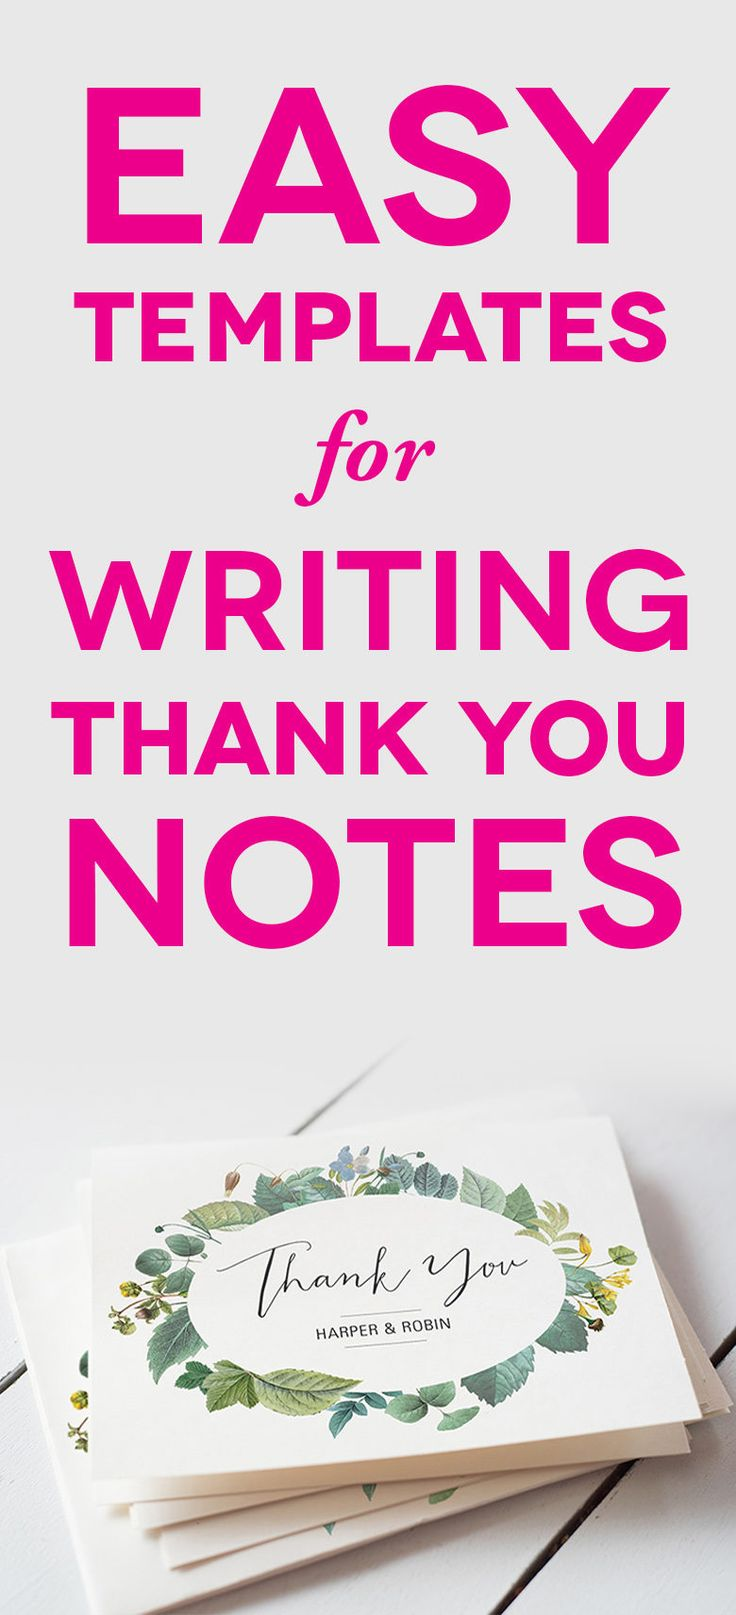 4 Super Easy Ways To Word Your Wedding Thank You Cards | A Practical Wedding | Bloglovin'